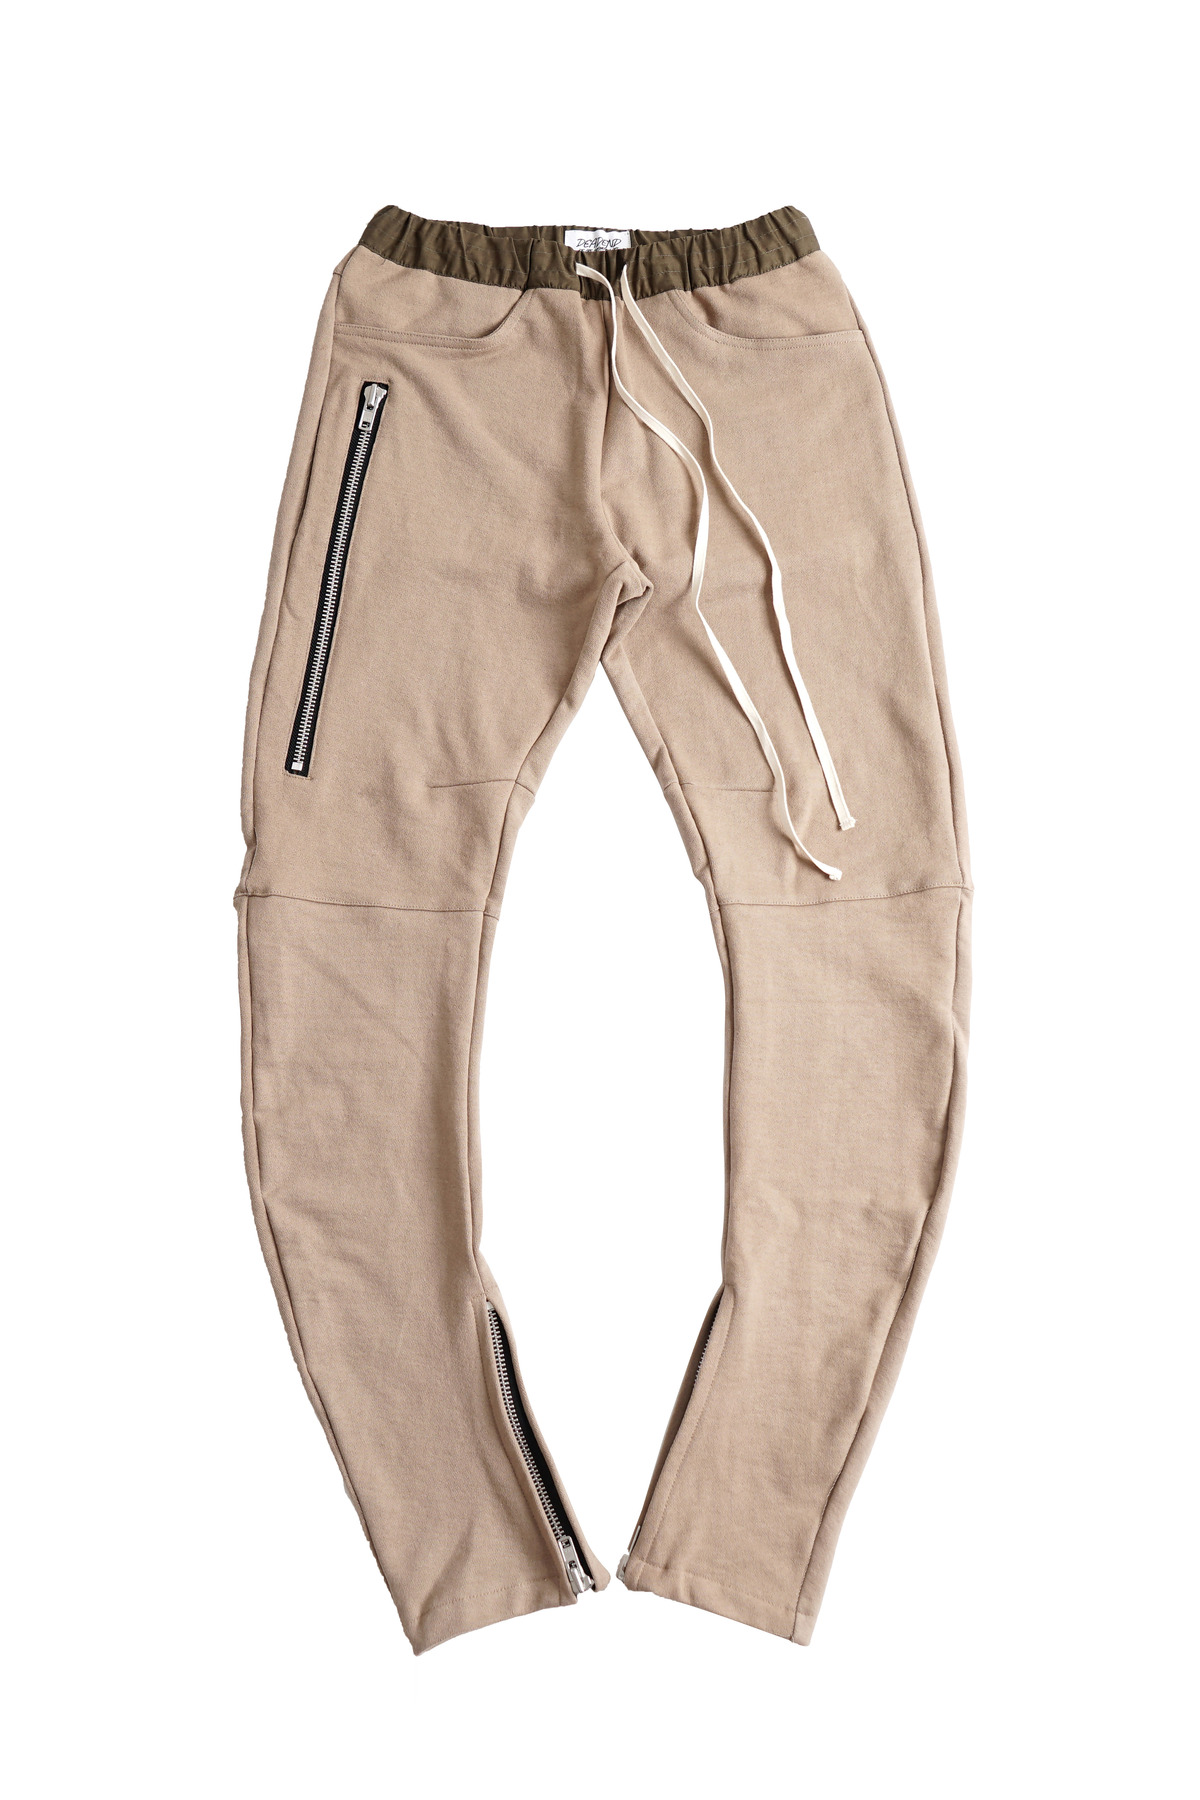 BEIGE J- DRAWSTRING PANTS